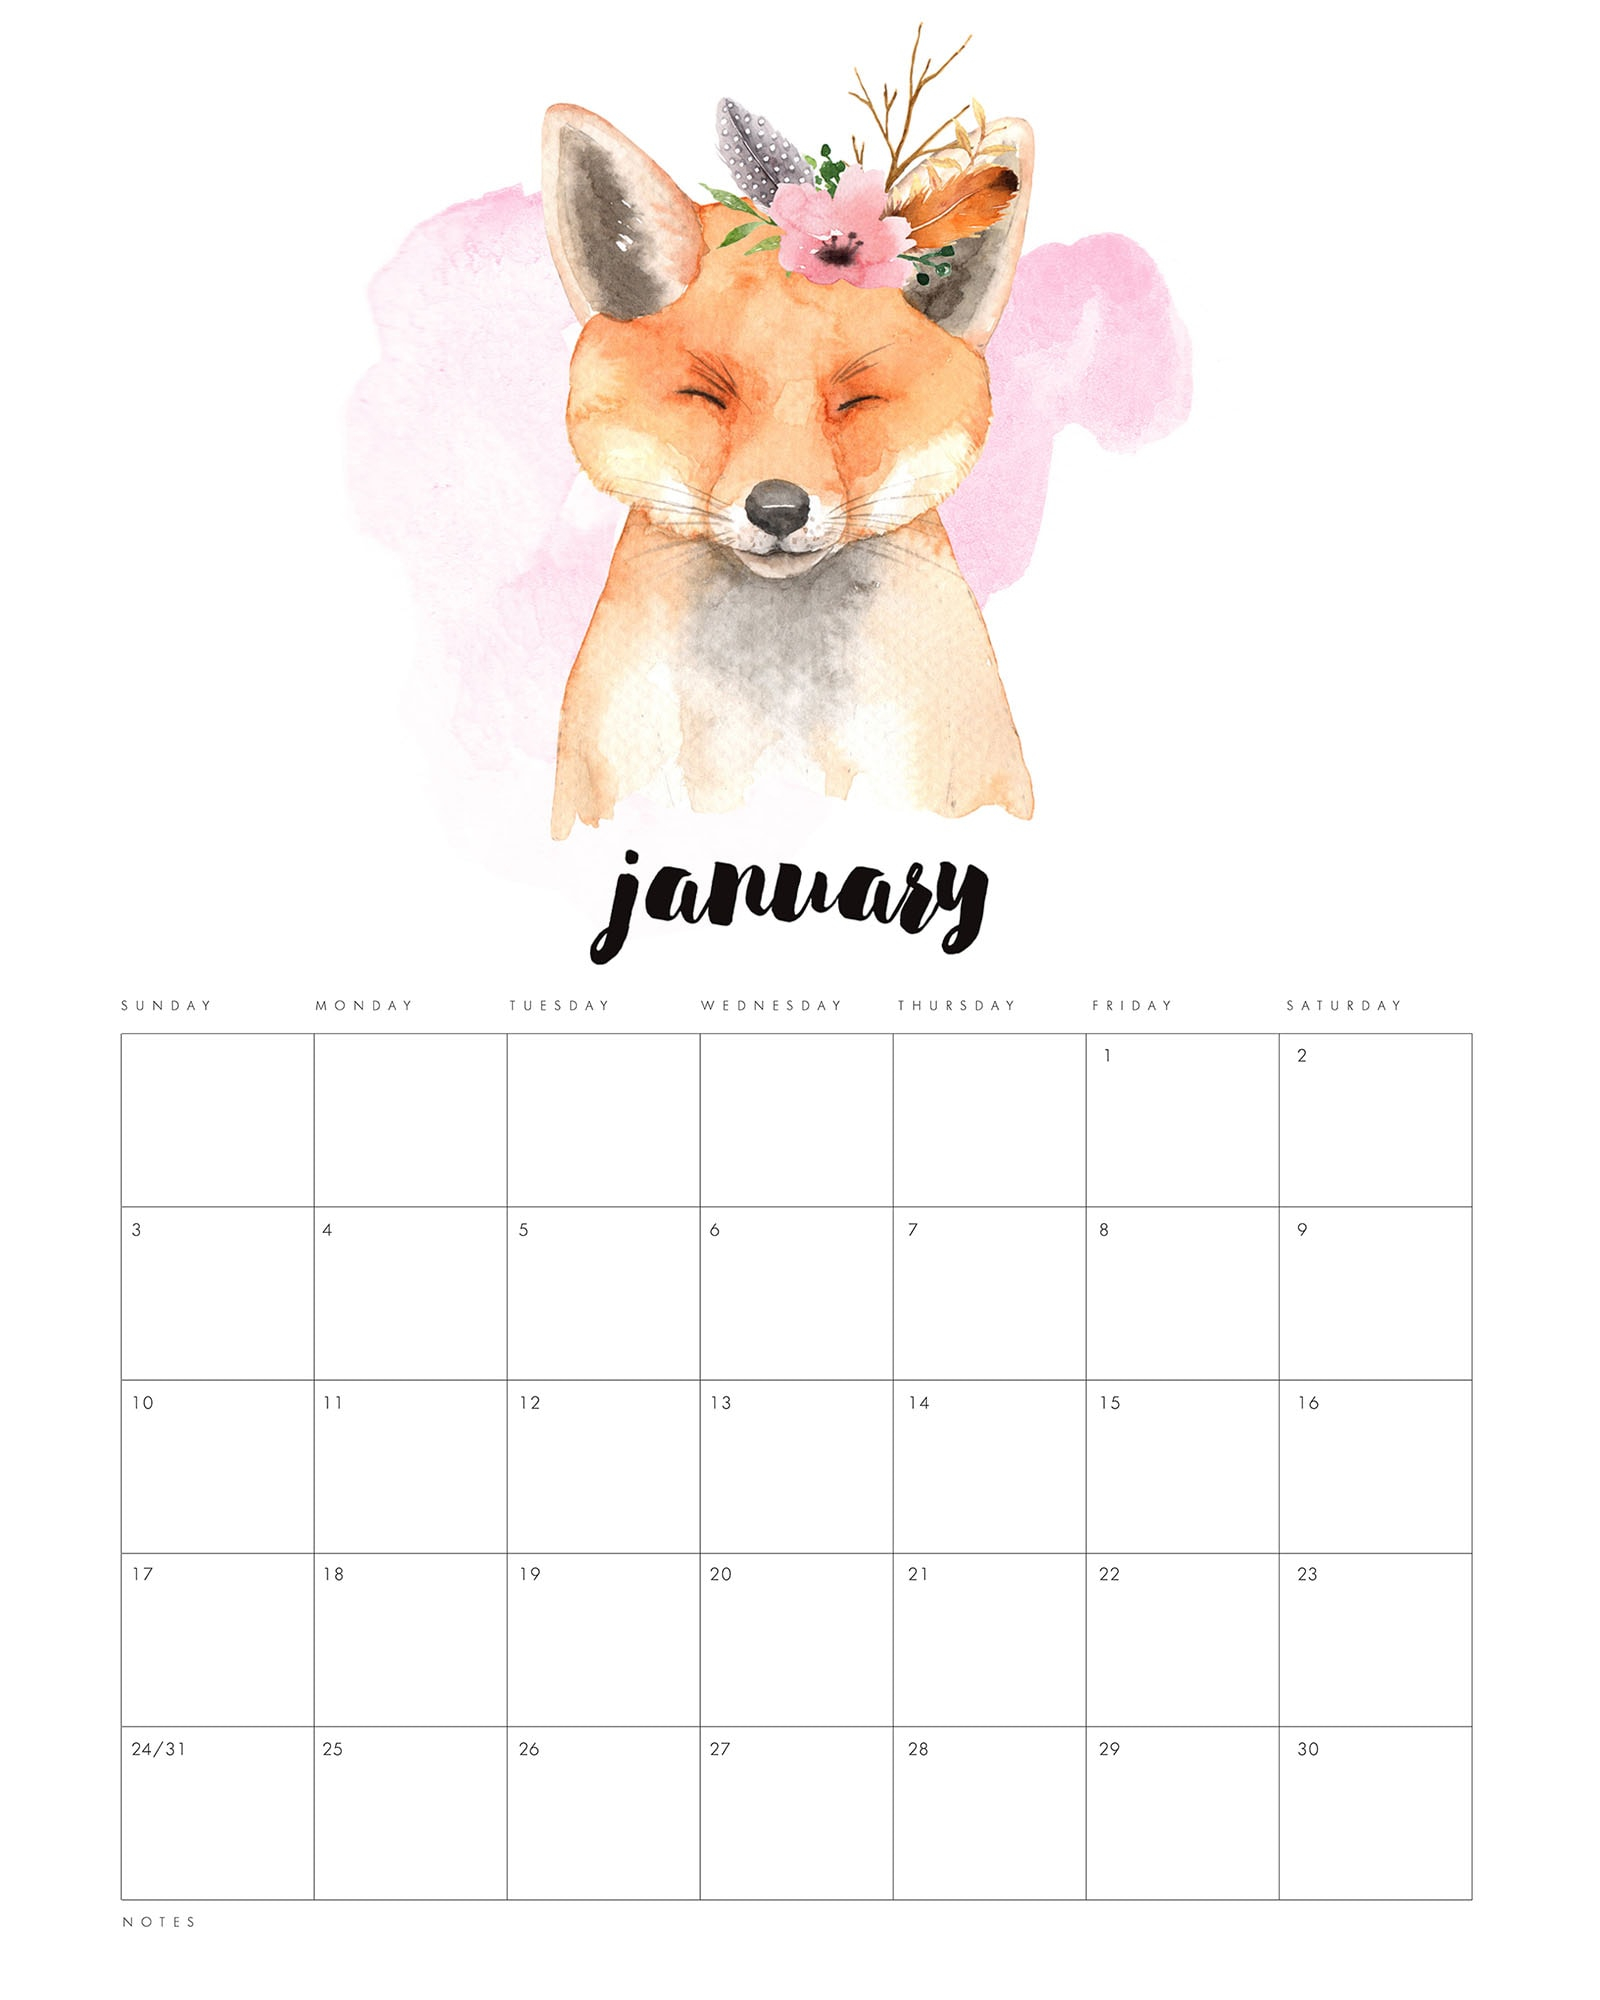 Free Printable 2021 Watercolor Animal Calendar - The Cottage